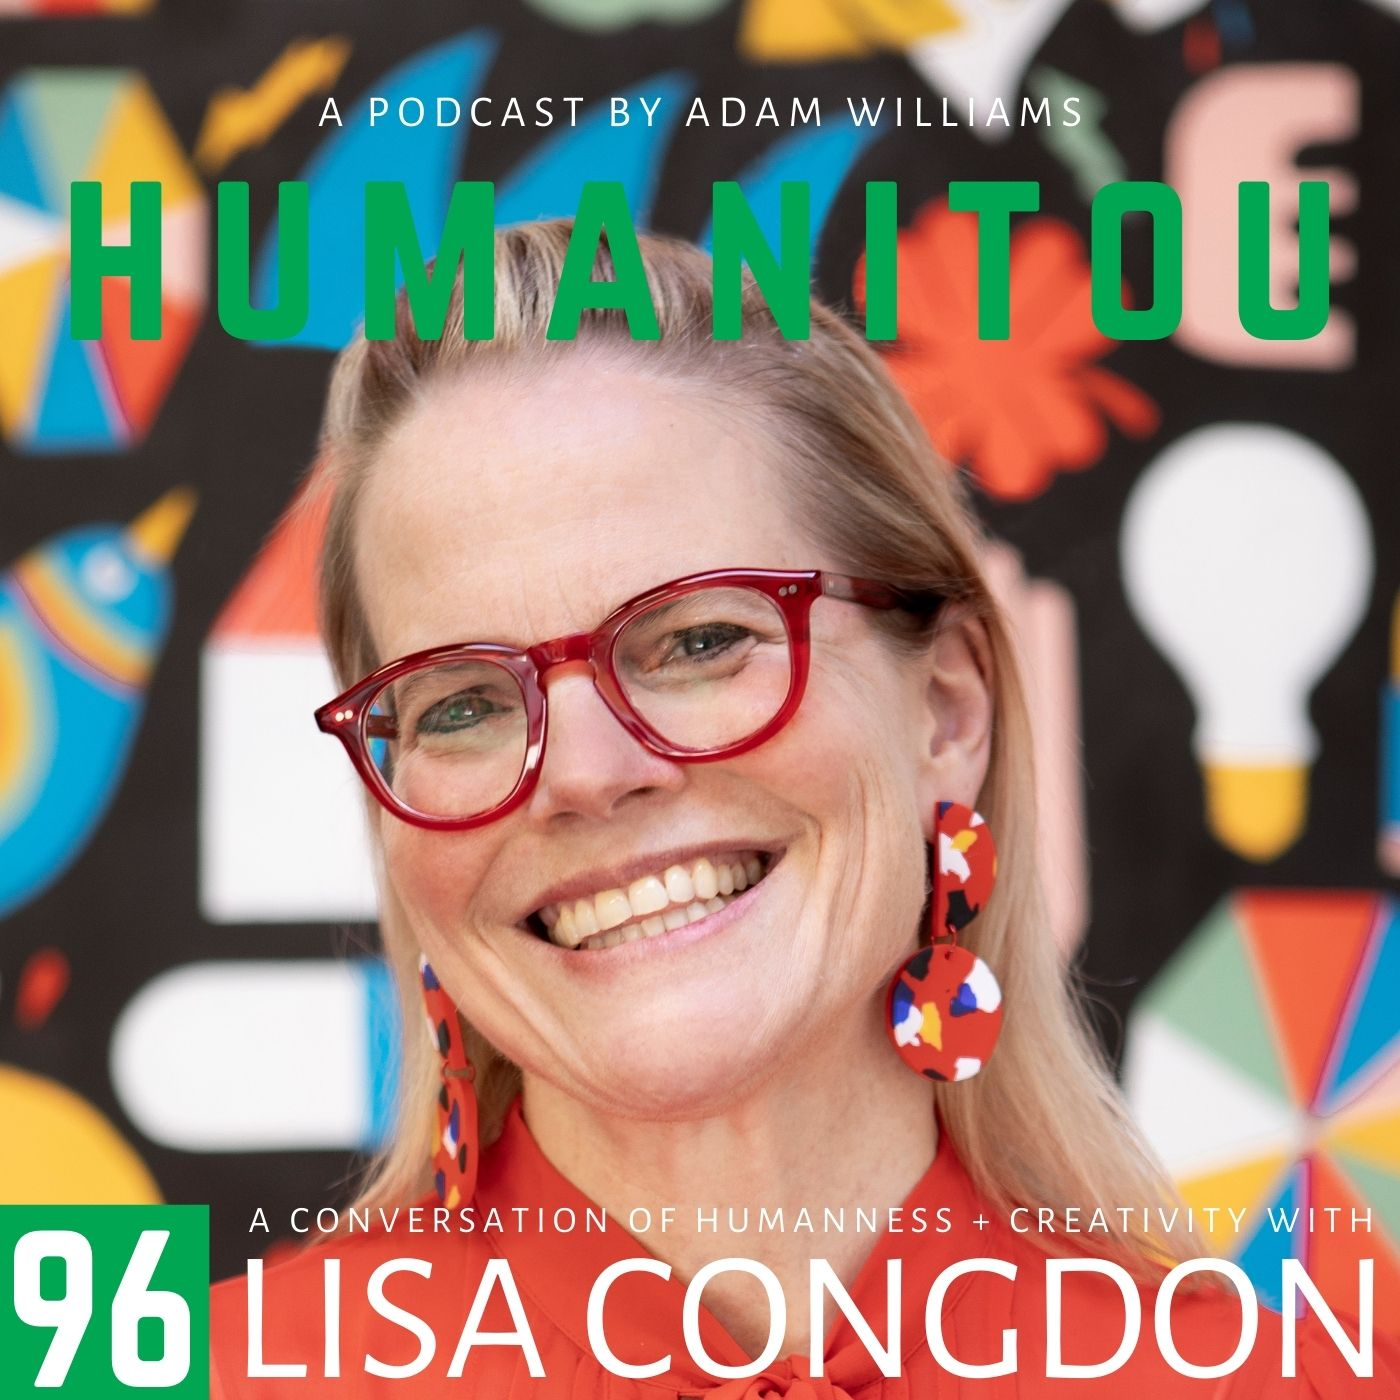 96: Lisa Congdon, illustrator & author, on failure, impostor syndrome, LGBTQ rights, meditation, breast cancer and being a change-agent